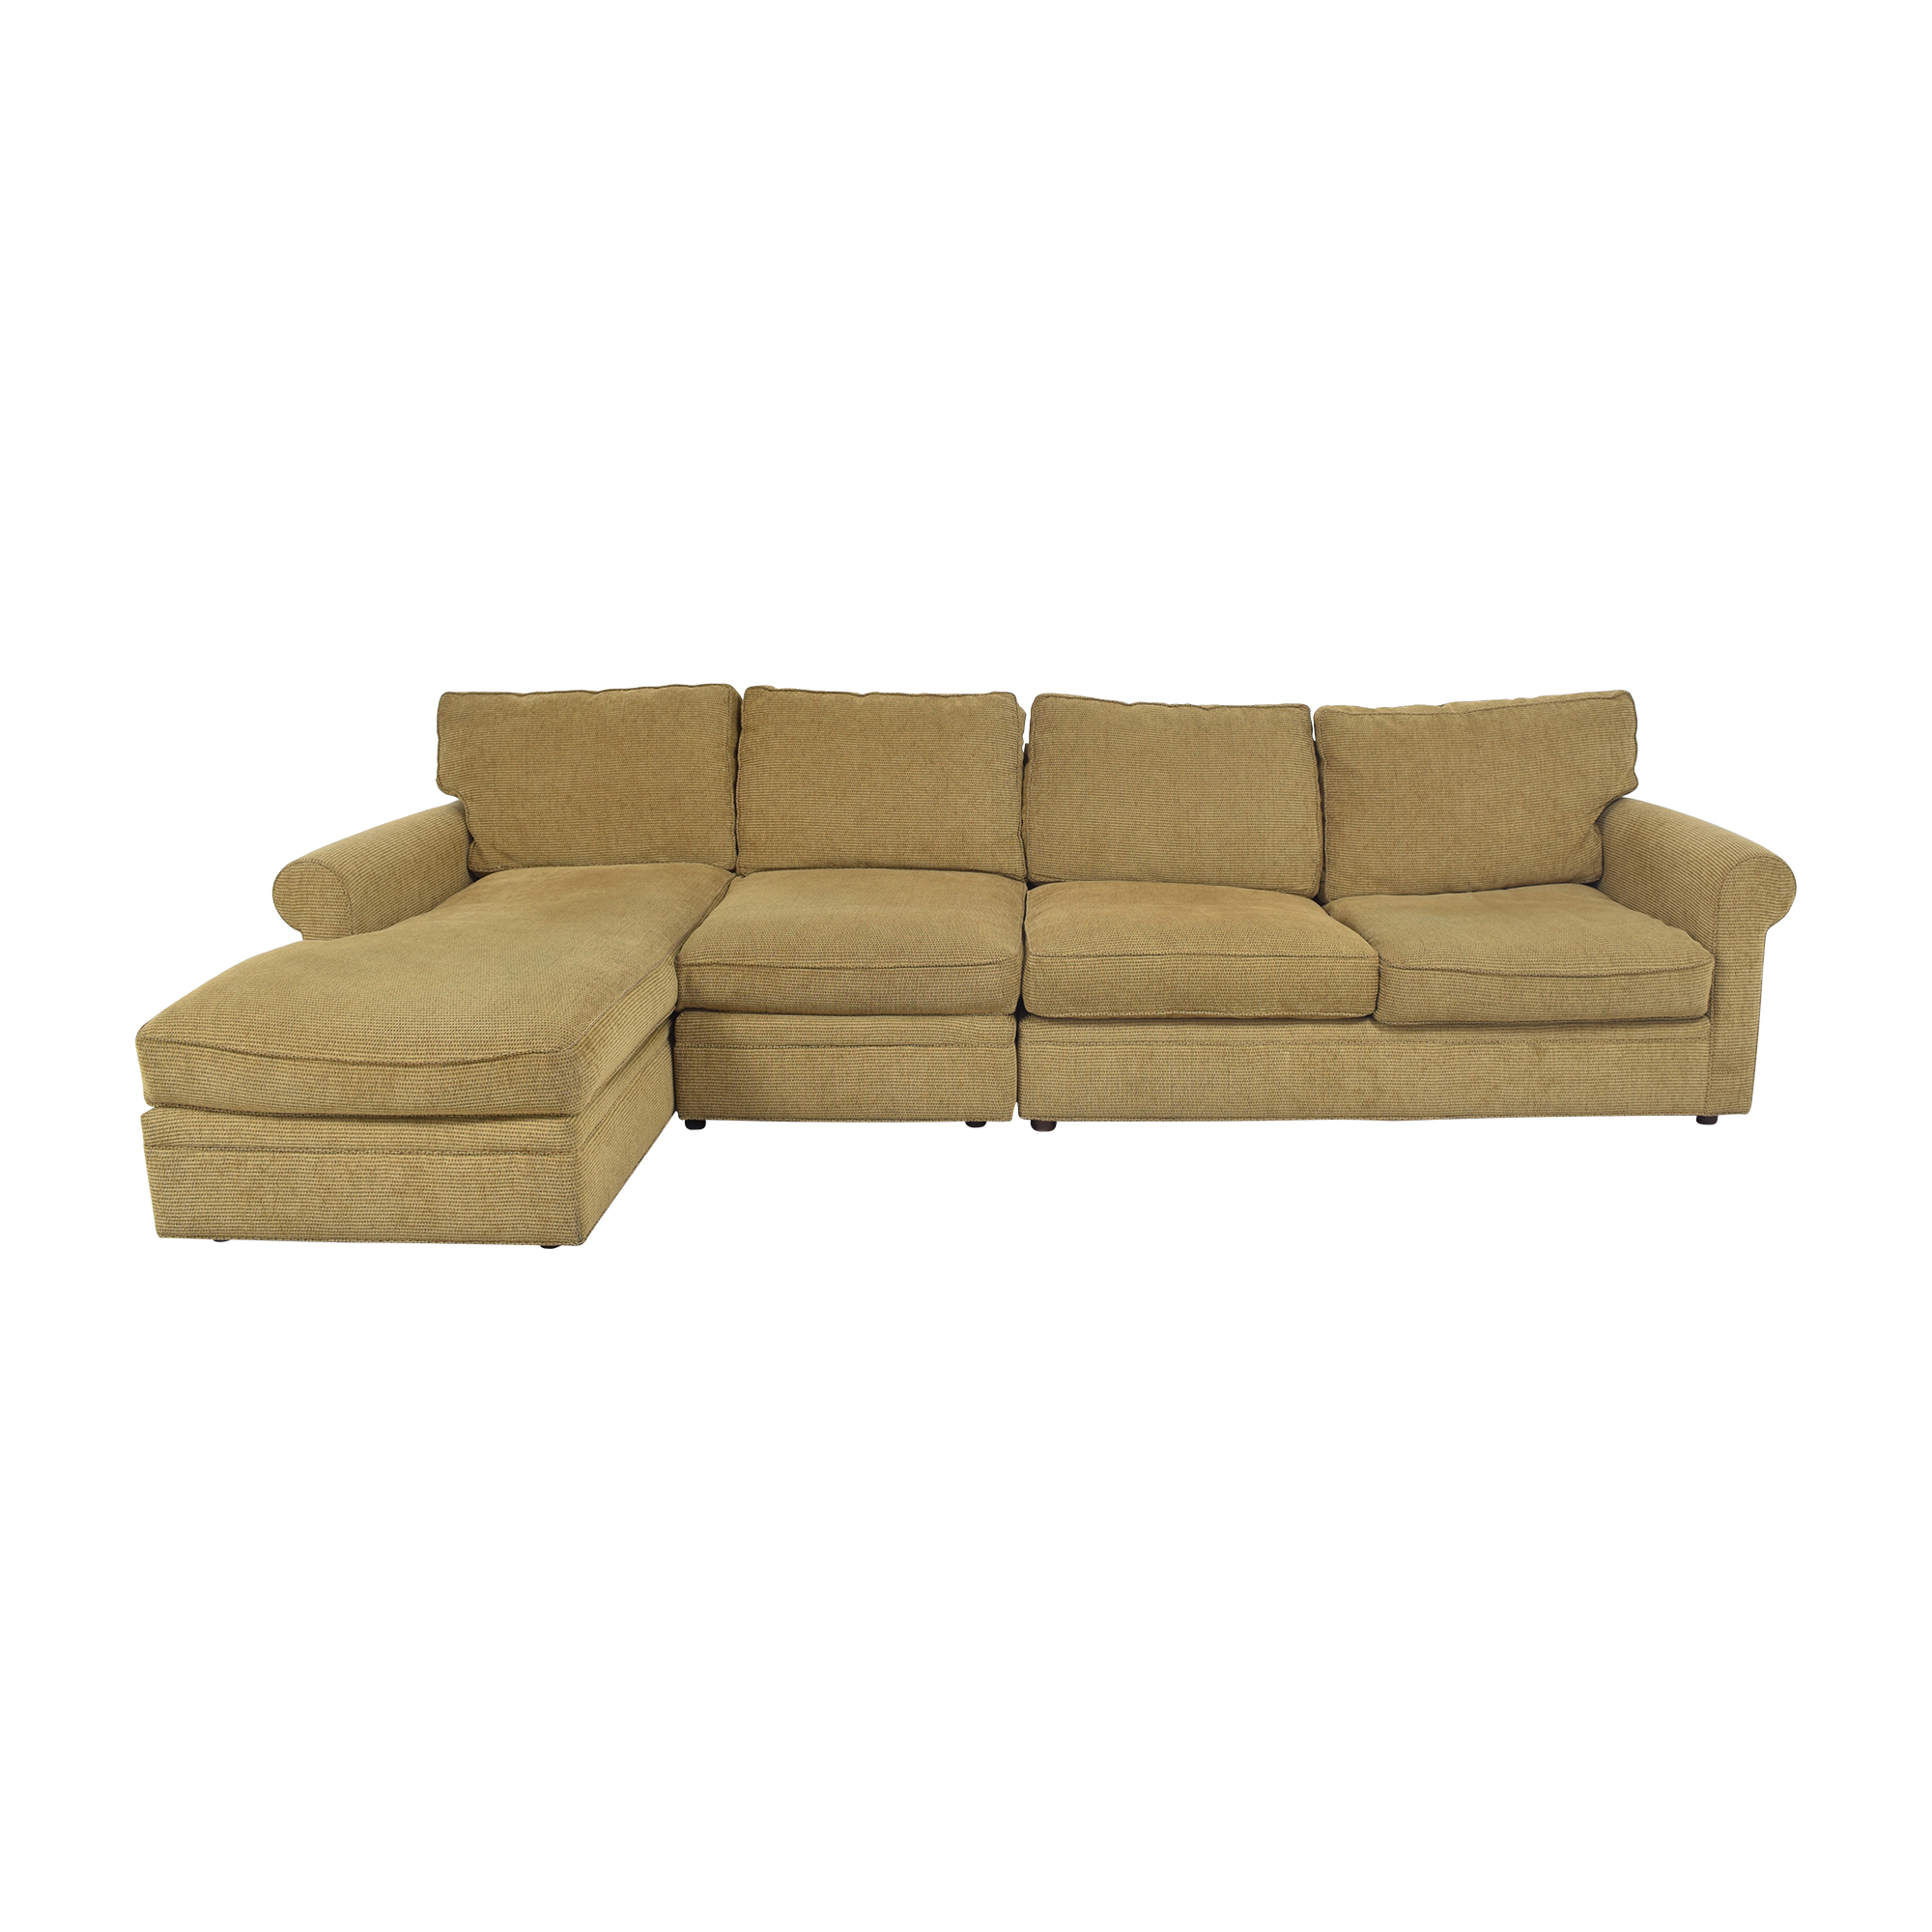 Crate & Barrel Crate & Barrel Chaise Sectional Sleeper Sofa coupon